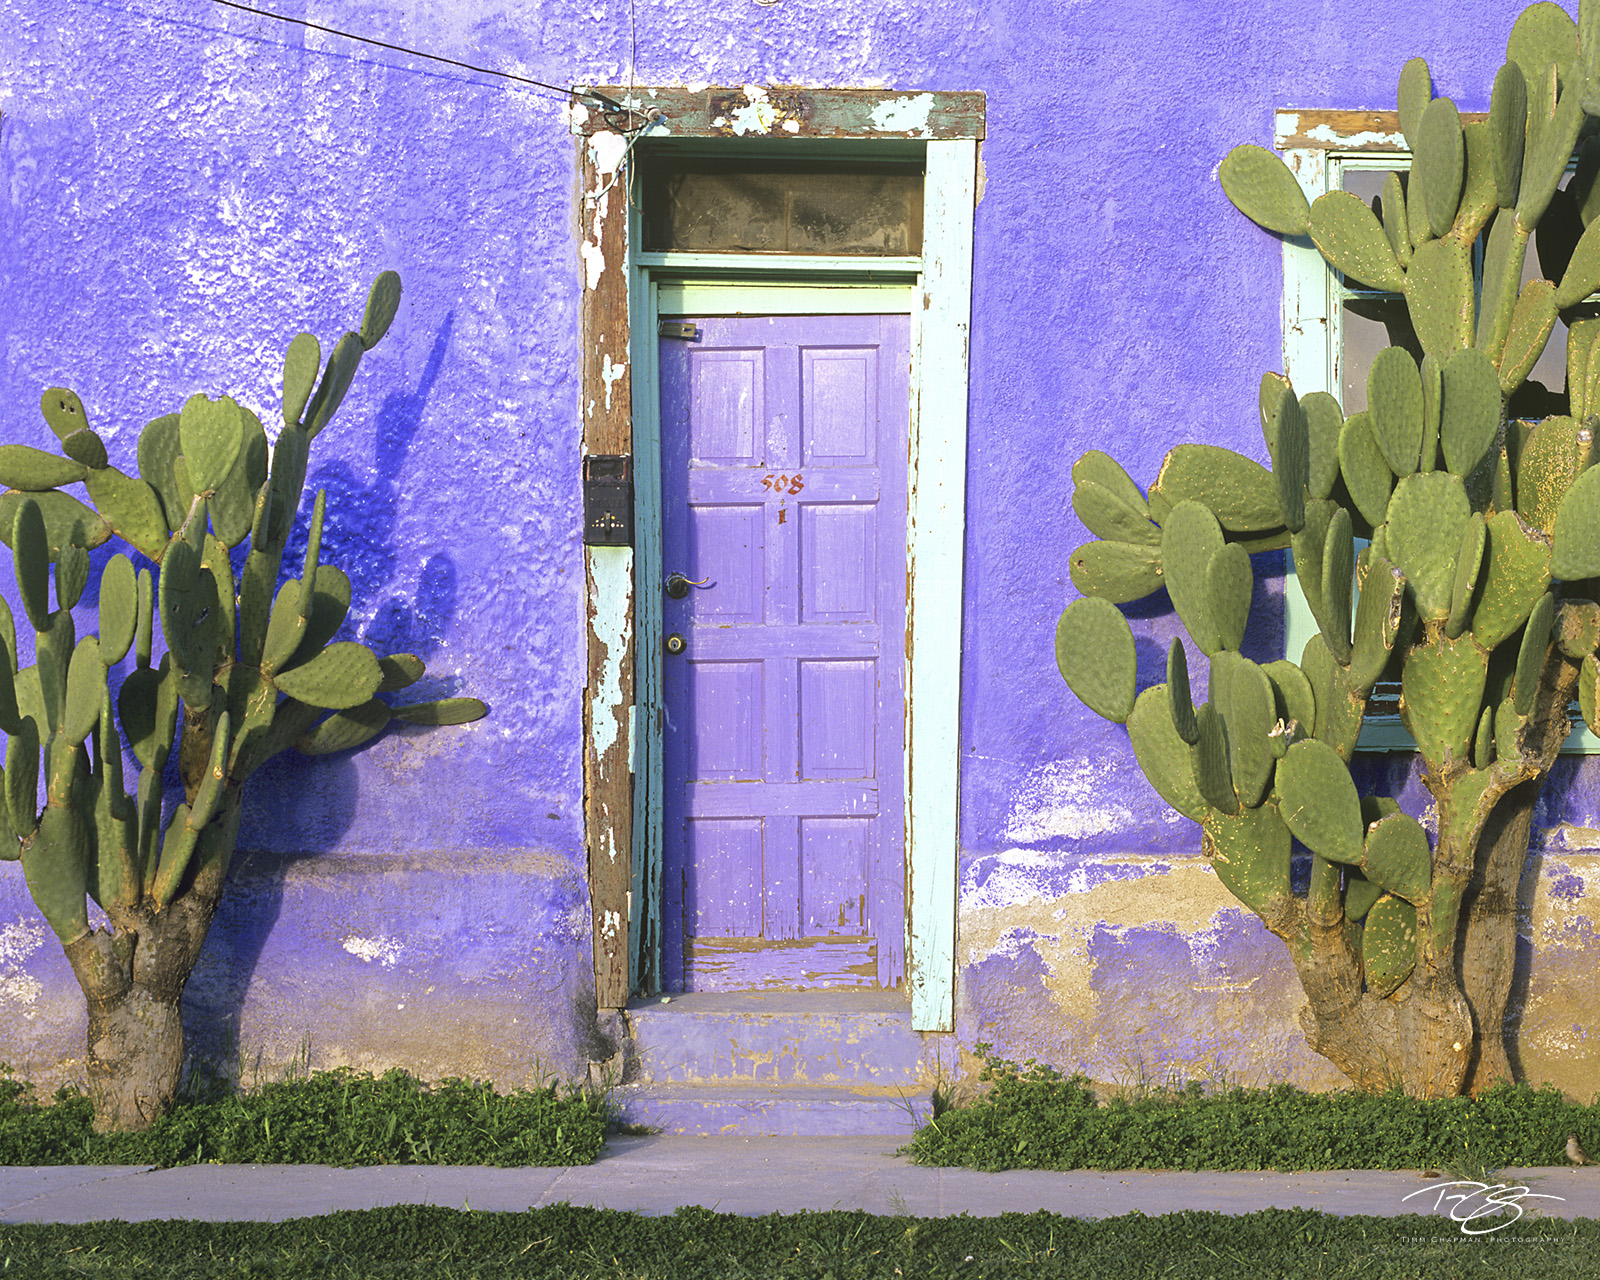 Arizona, Southwest, desert, door, doorways, doors, window, windows, entrances, entranceways, weathered, derelict, cactus, colourful doors, colorful doors, paint chipped, flaking paint, cacti, lavender